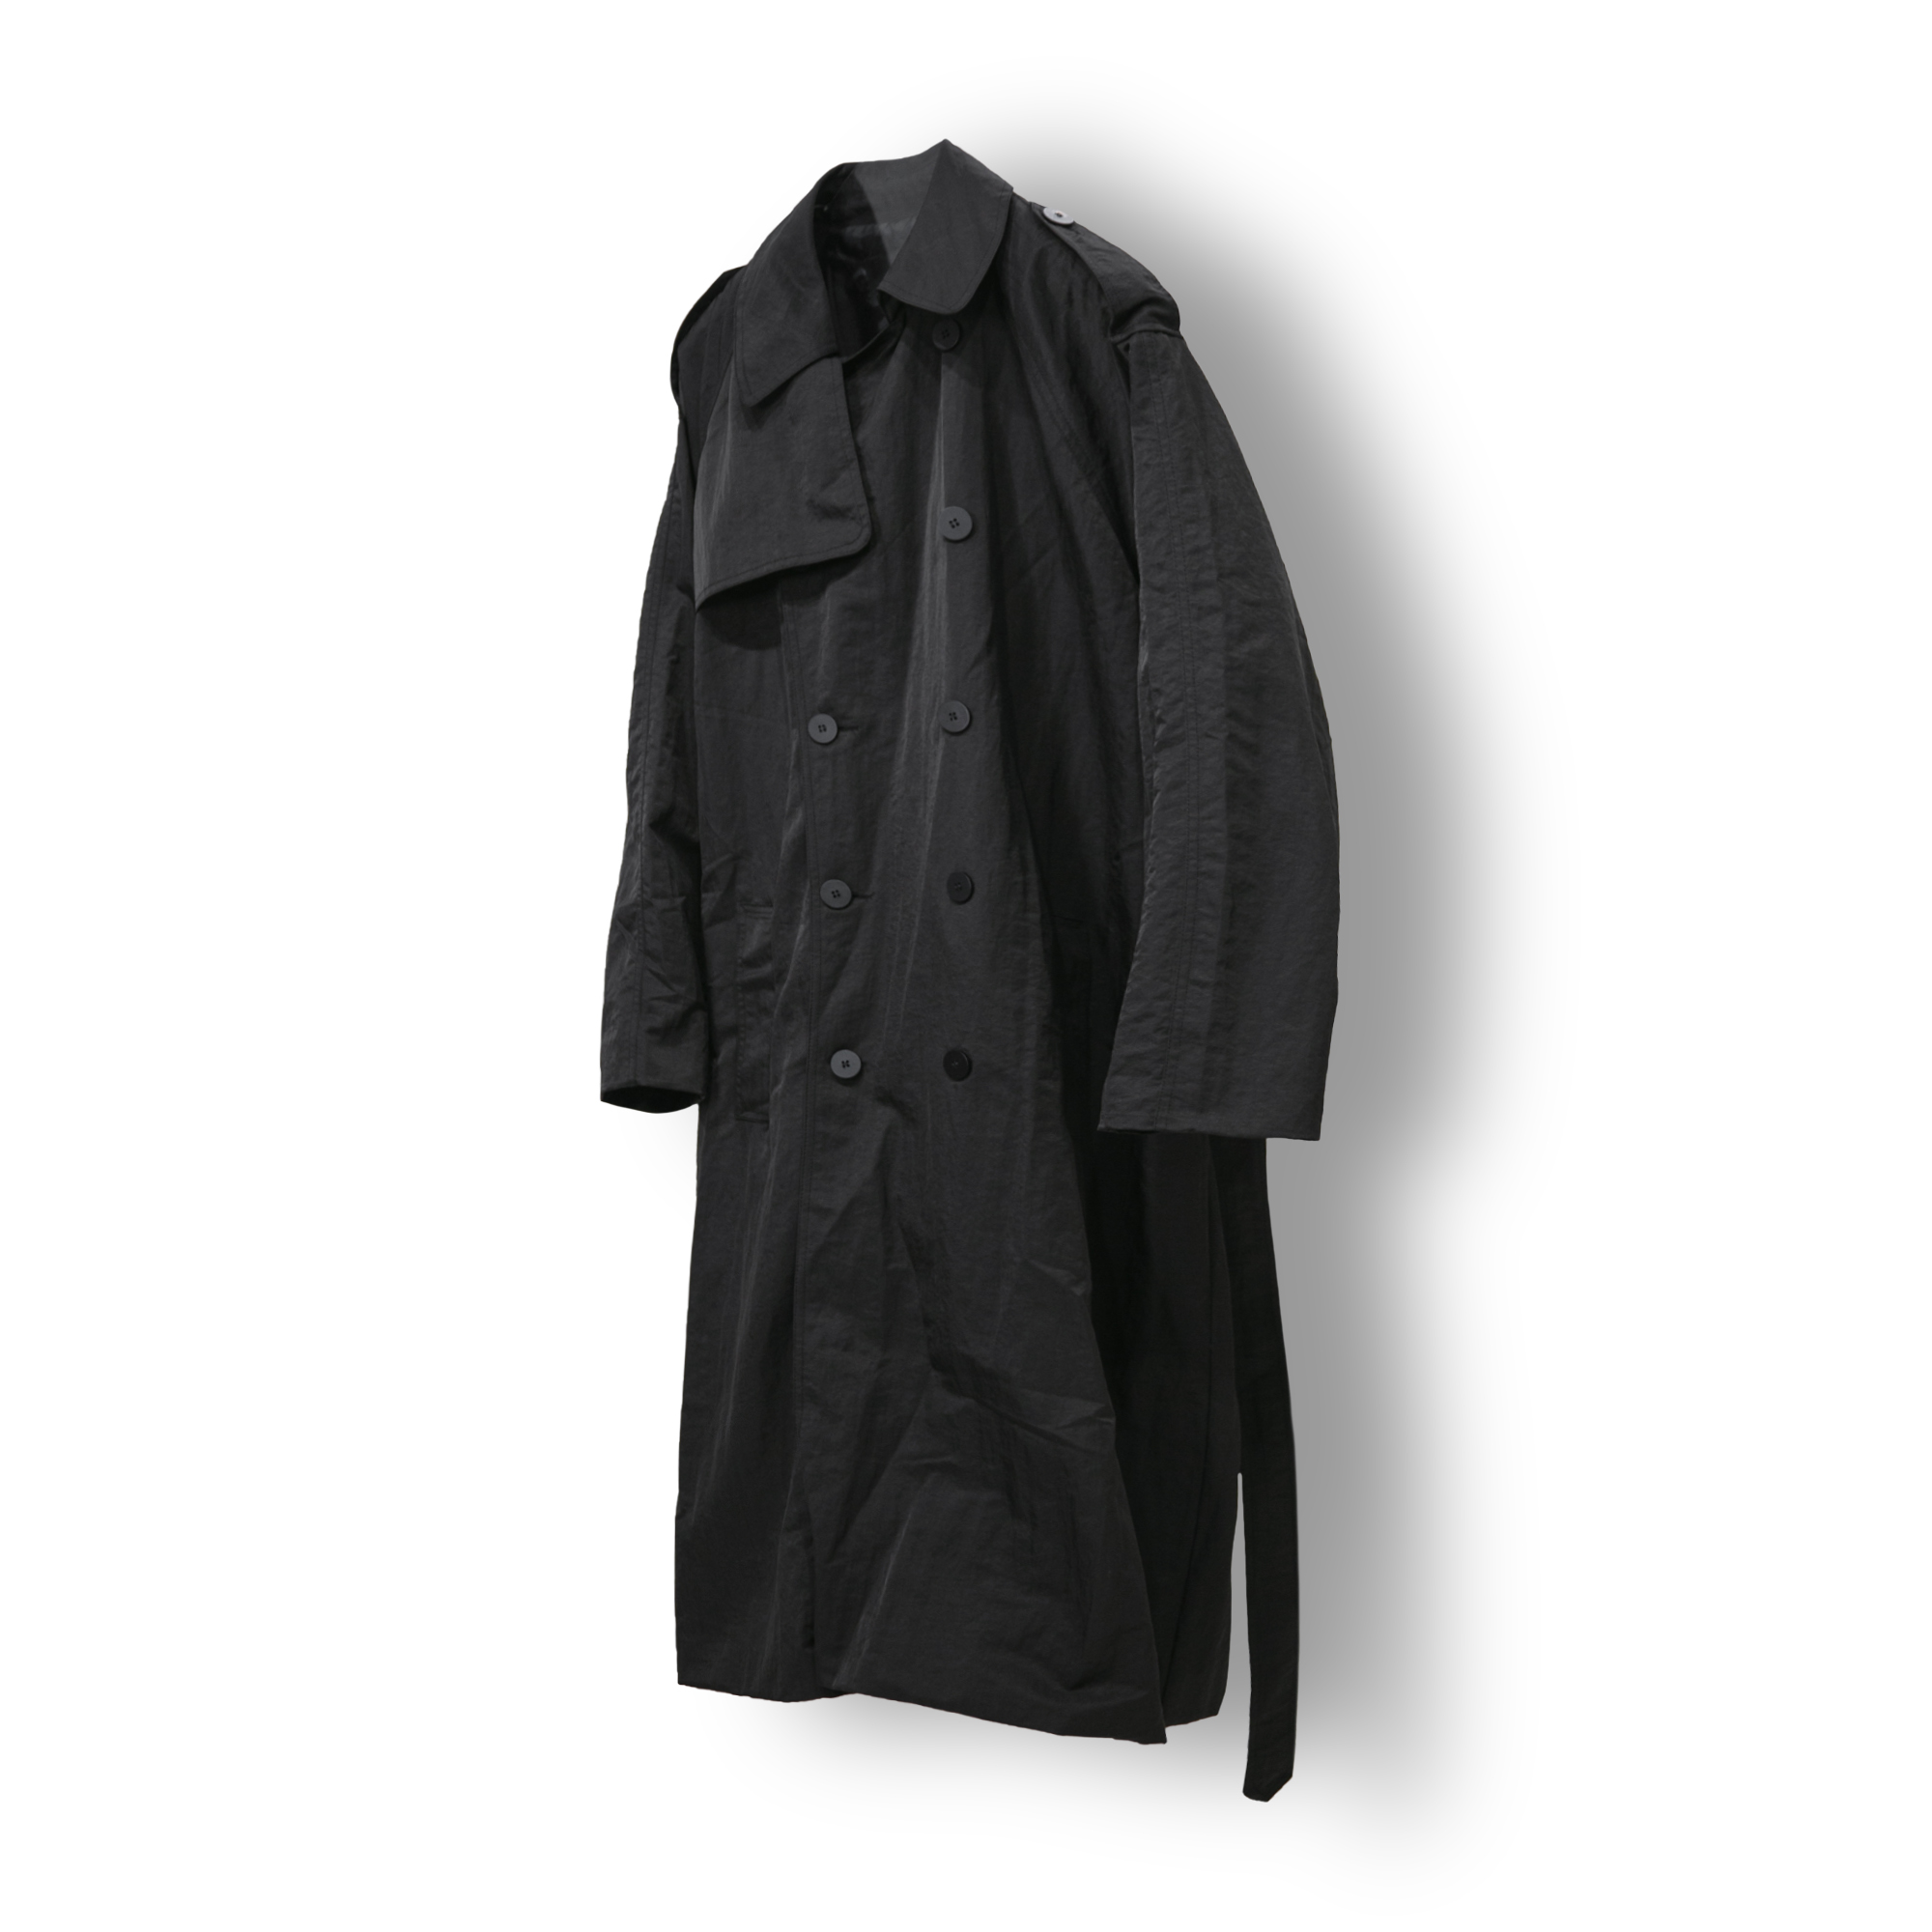 General Over Trench Coat - Black